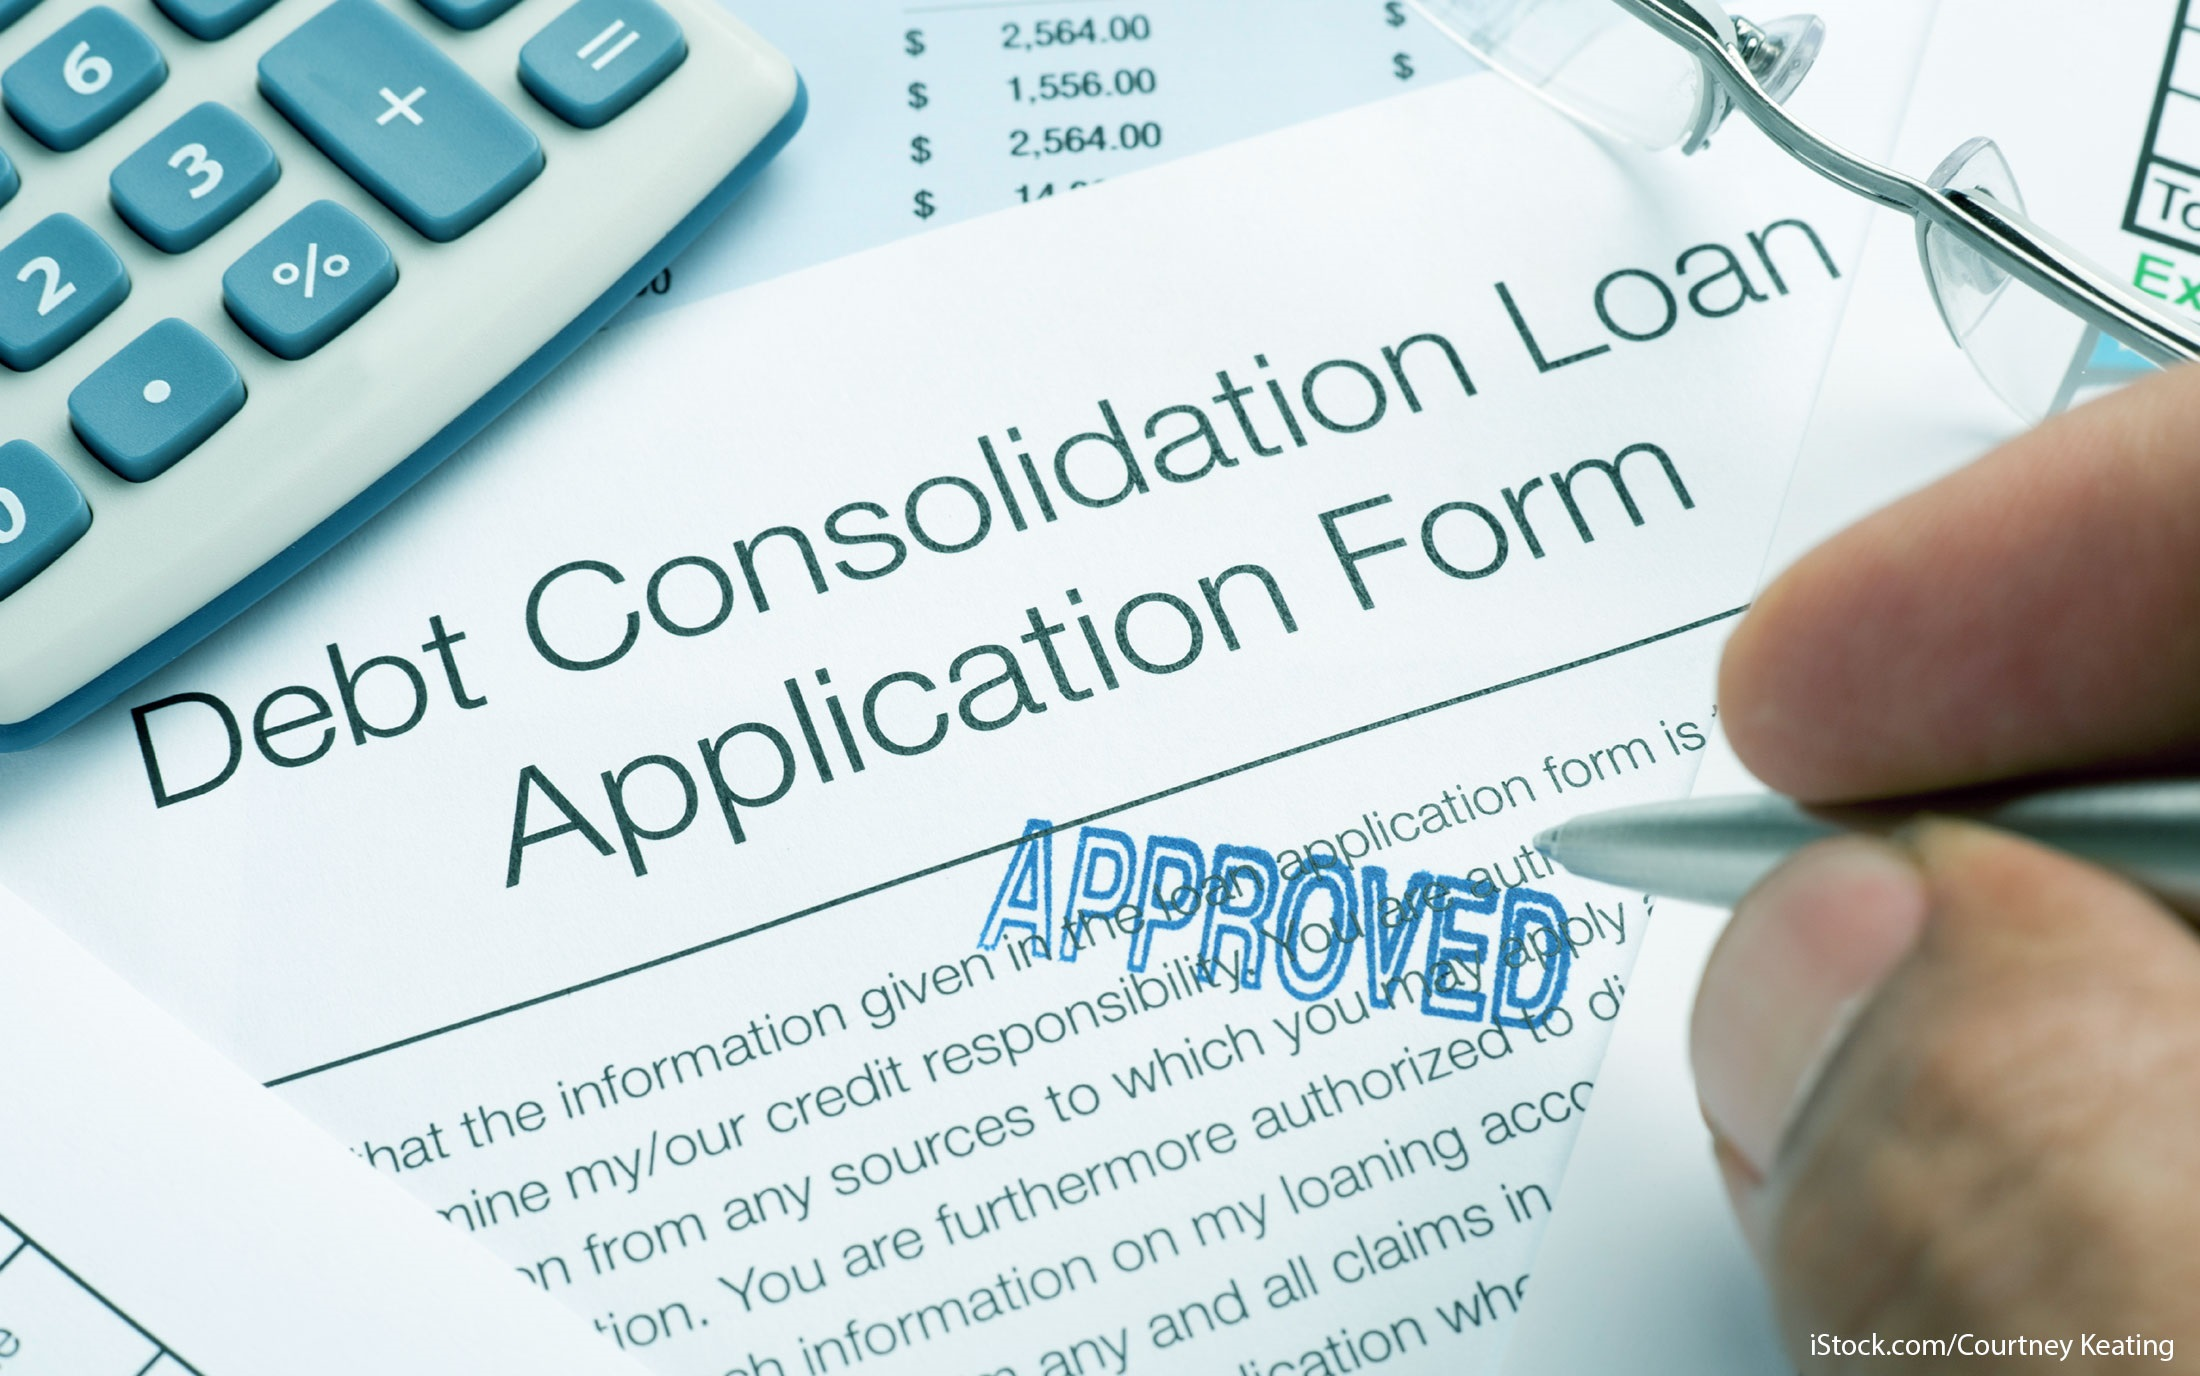 Is Debt Consolidation The Same As Restructuring Debt. Requirements To Teach Online College Courses. Charleston Divorce Lawyers Online Gis Viewer. How To Become A High School Math Teacher. Financing Options For Small Businesses. Queens College Library School. Is It Good To Transfer Credit Card Balances. Bank Of America Remote Deposit. Sharing Documents Online Clock App For Iphone